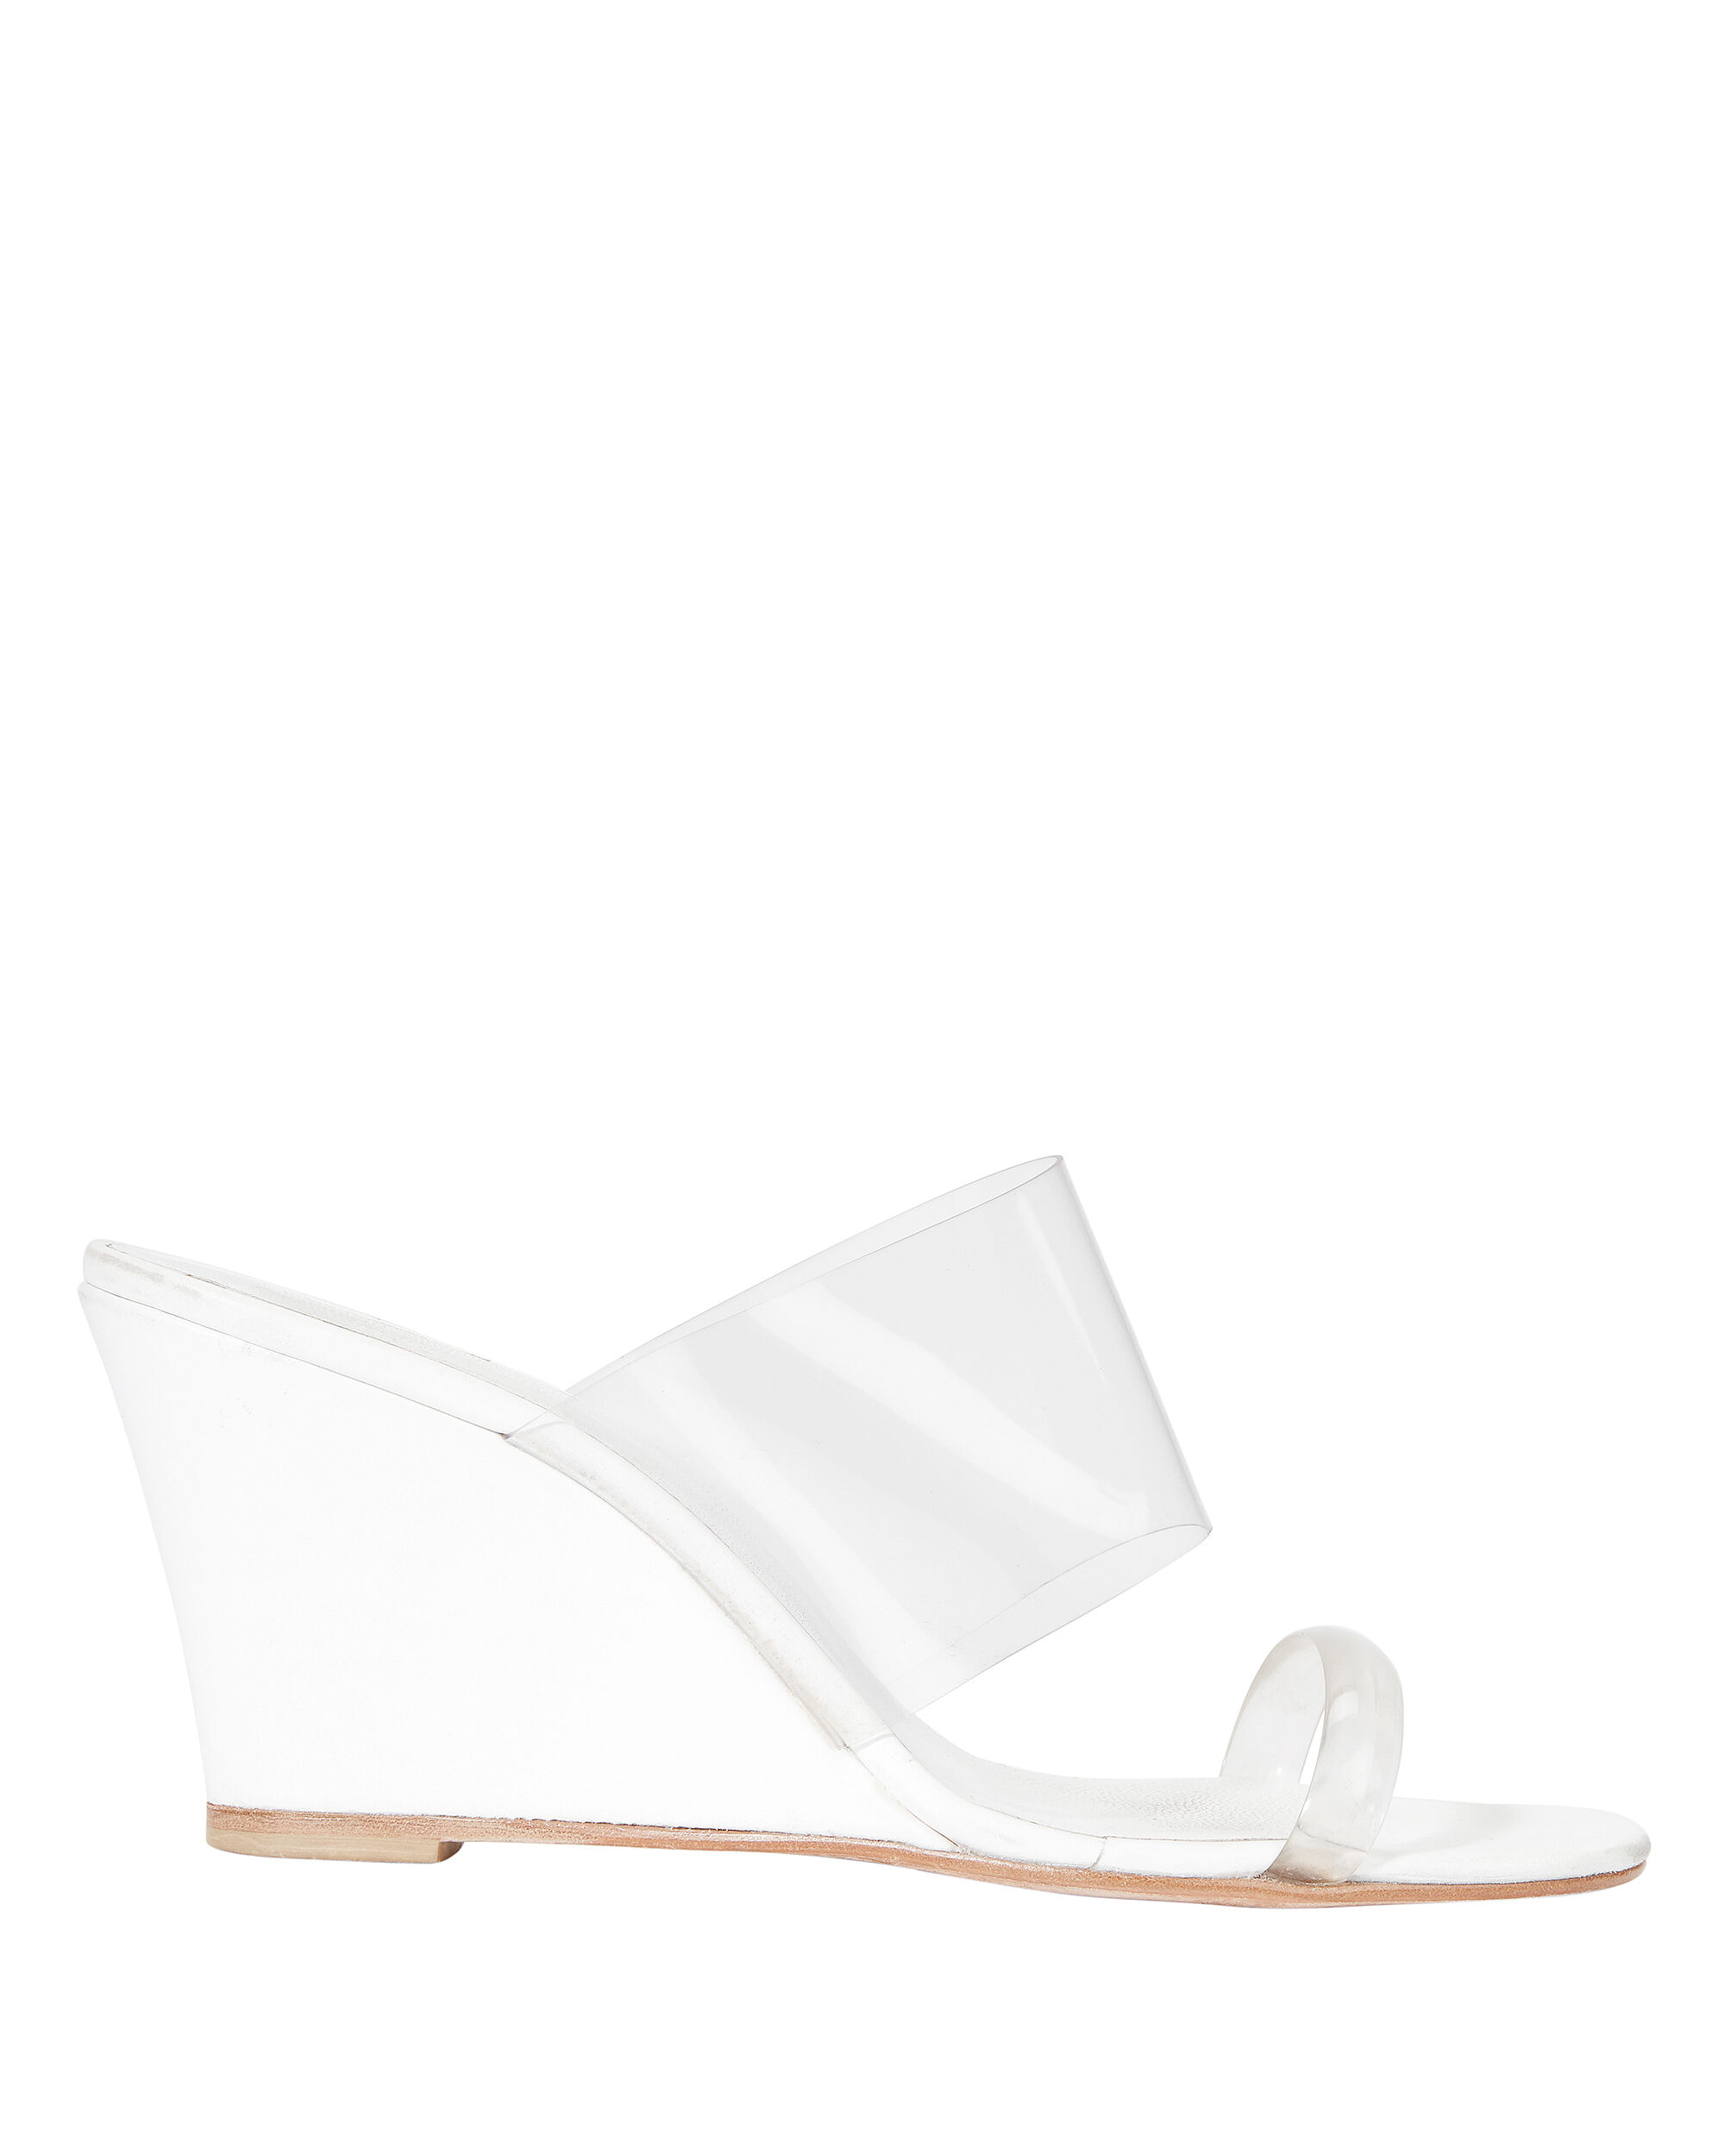 Olympia Translucent Wedges, WHITE, hi-res